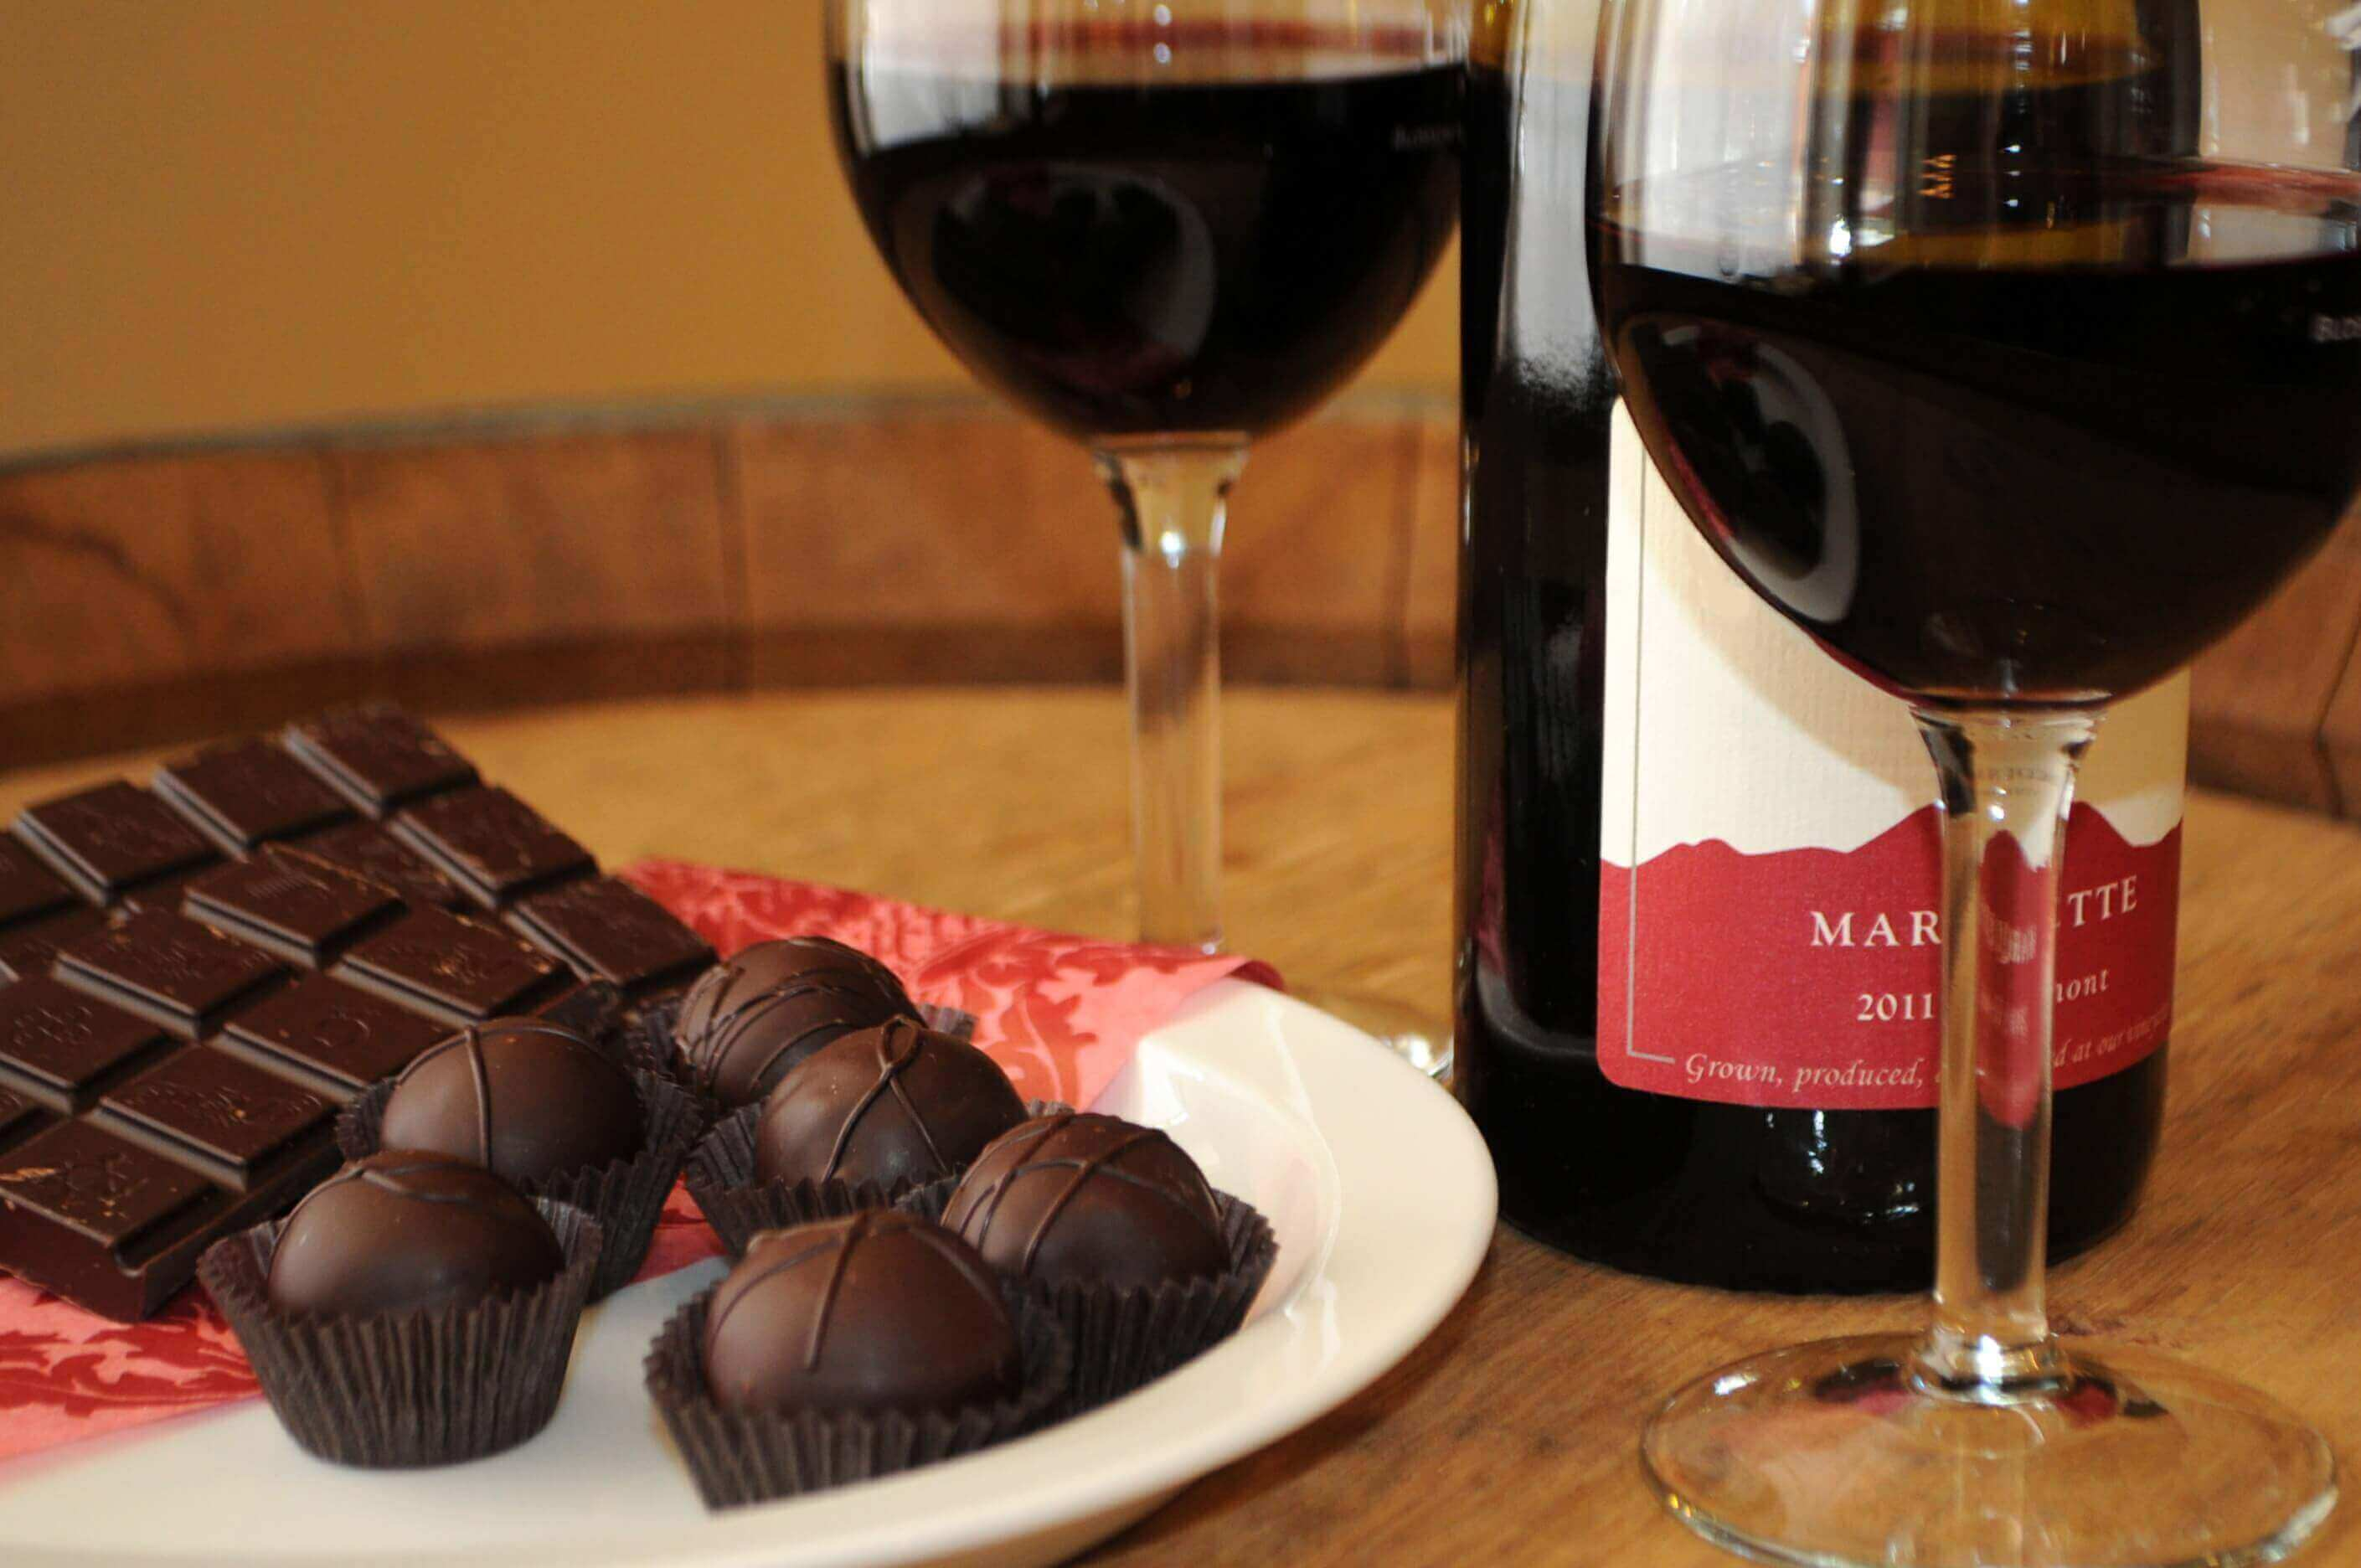 Enjoy a wine and chocolate tasting